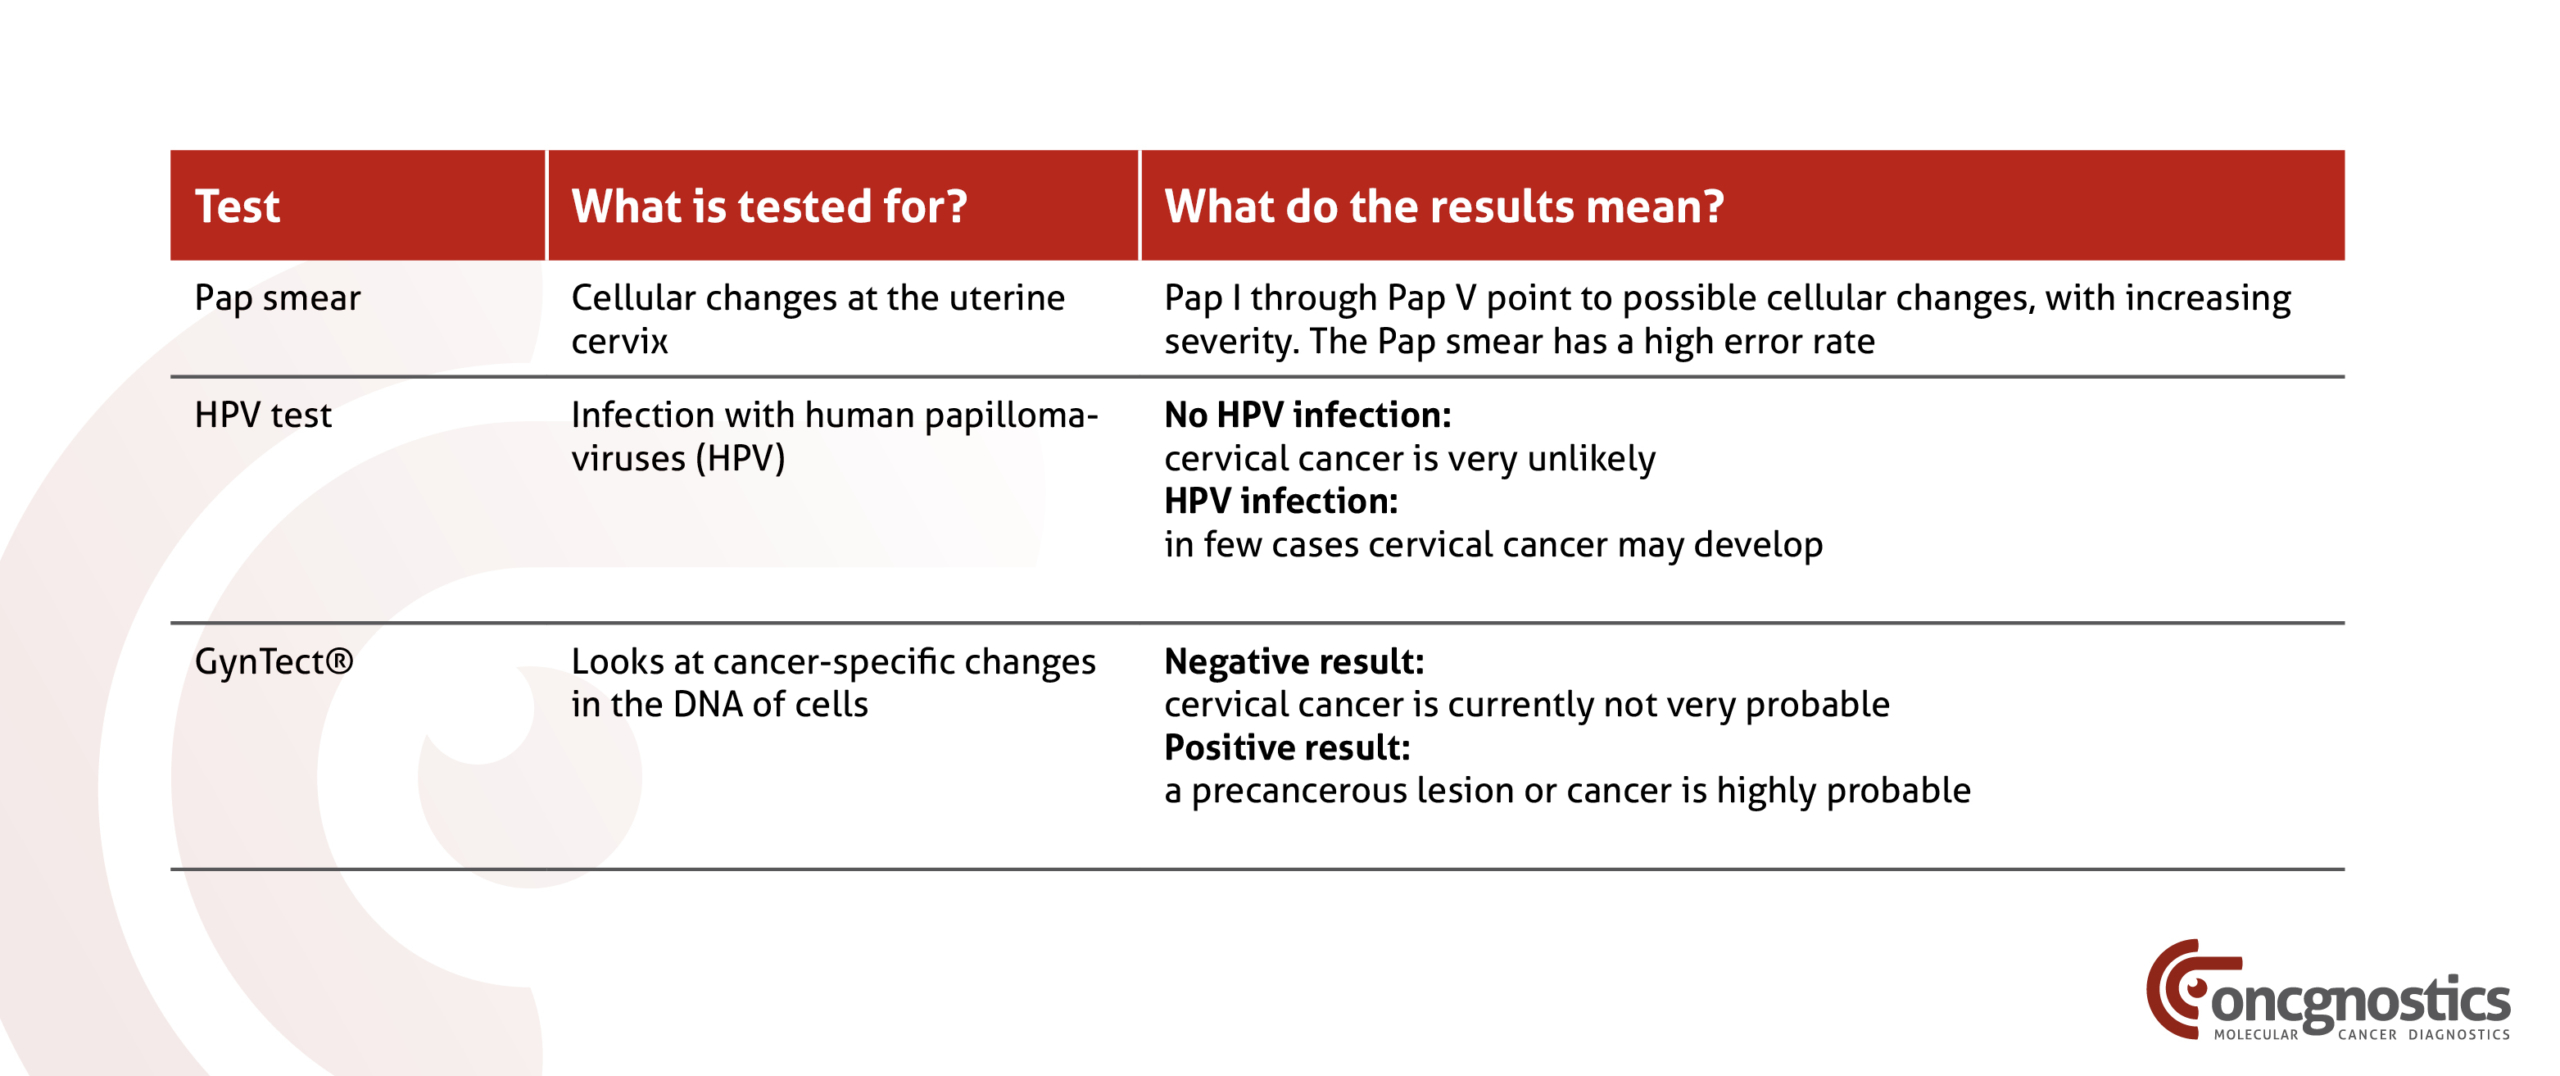 Pap smear, HPV test, GynTect